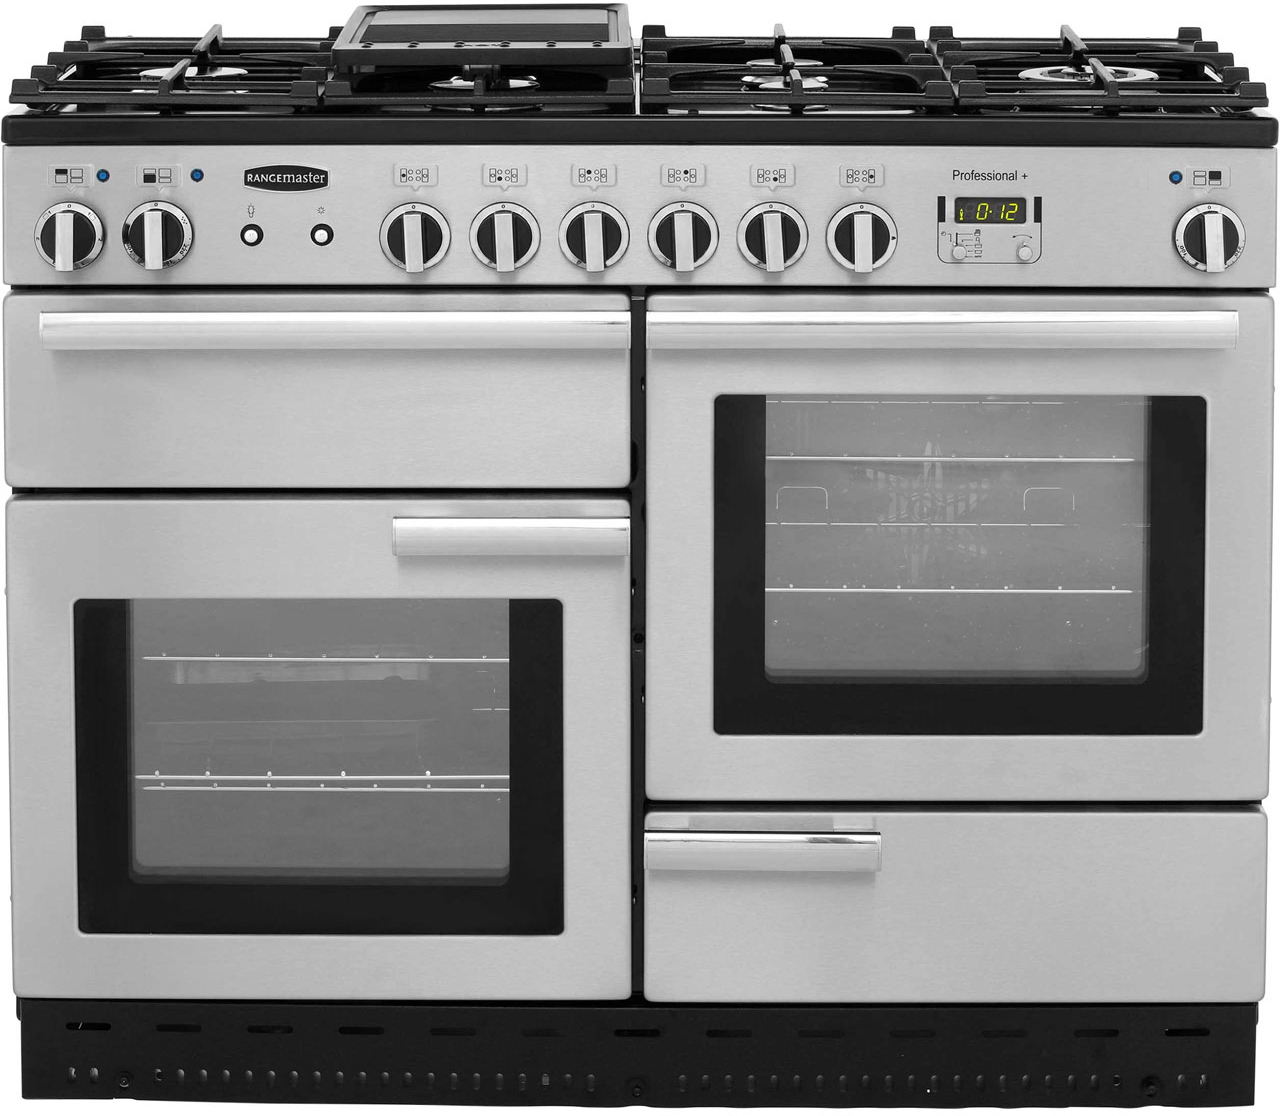 Large range oven cleaned by Ultra Clean Ovens from £125